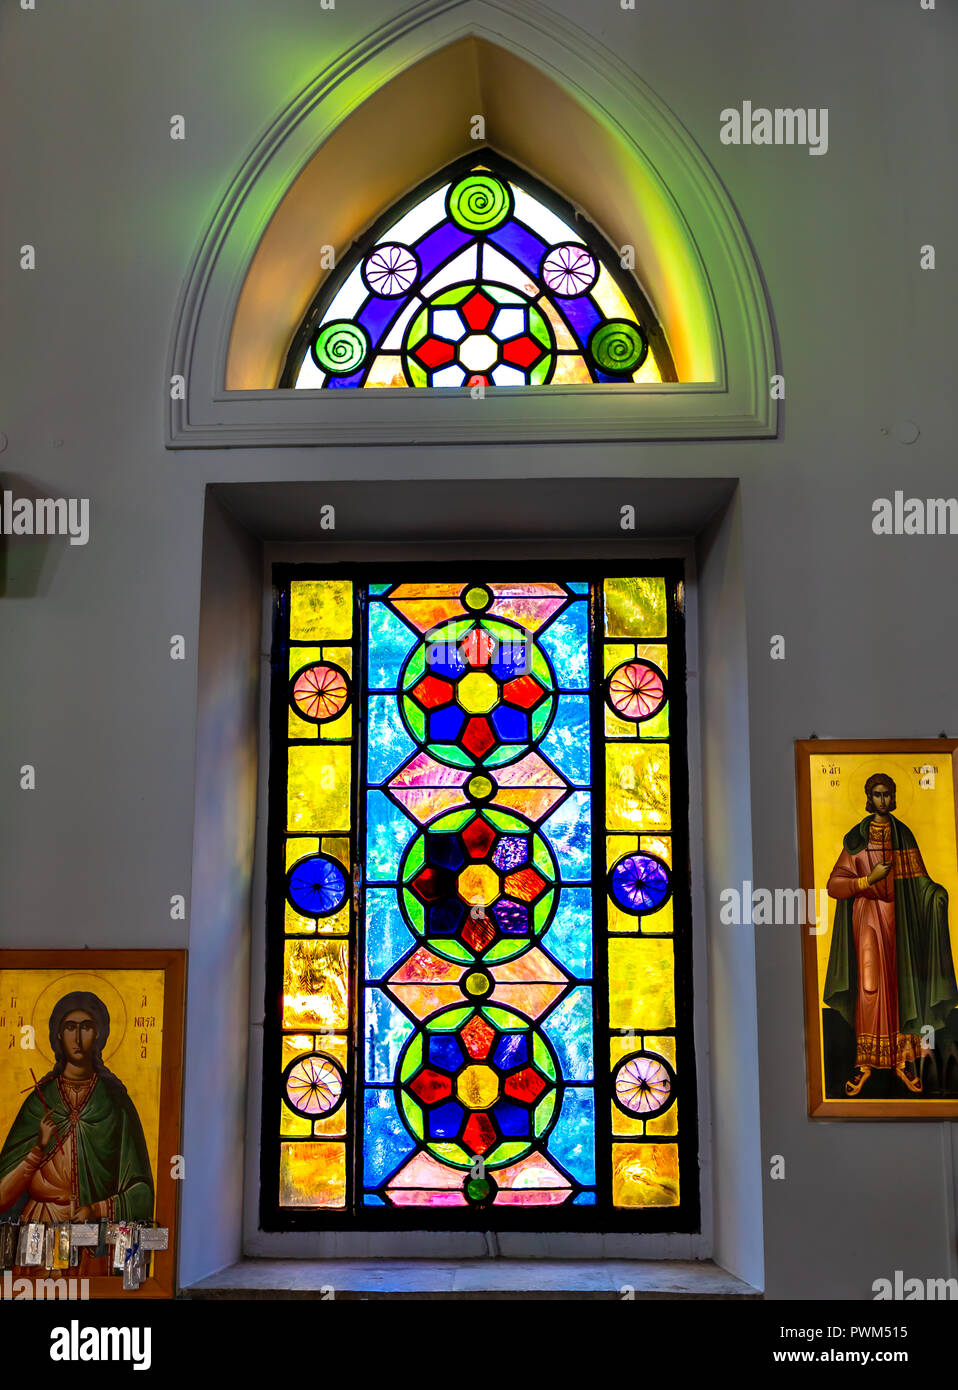 Old stain glass window in an alcove of the Church of Saint Titus. - Stock Image